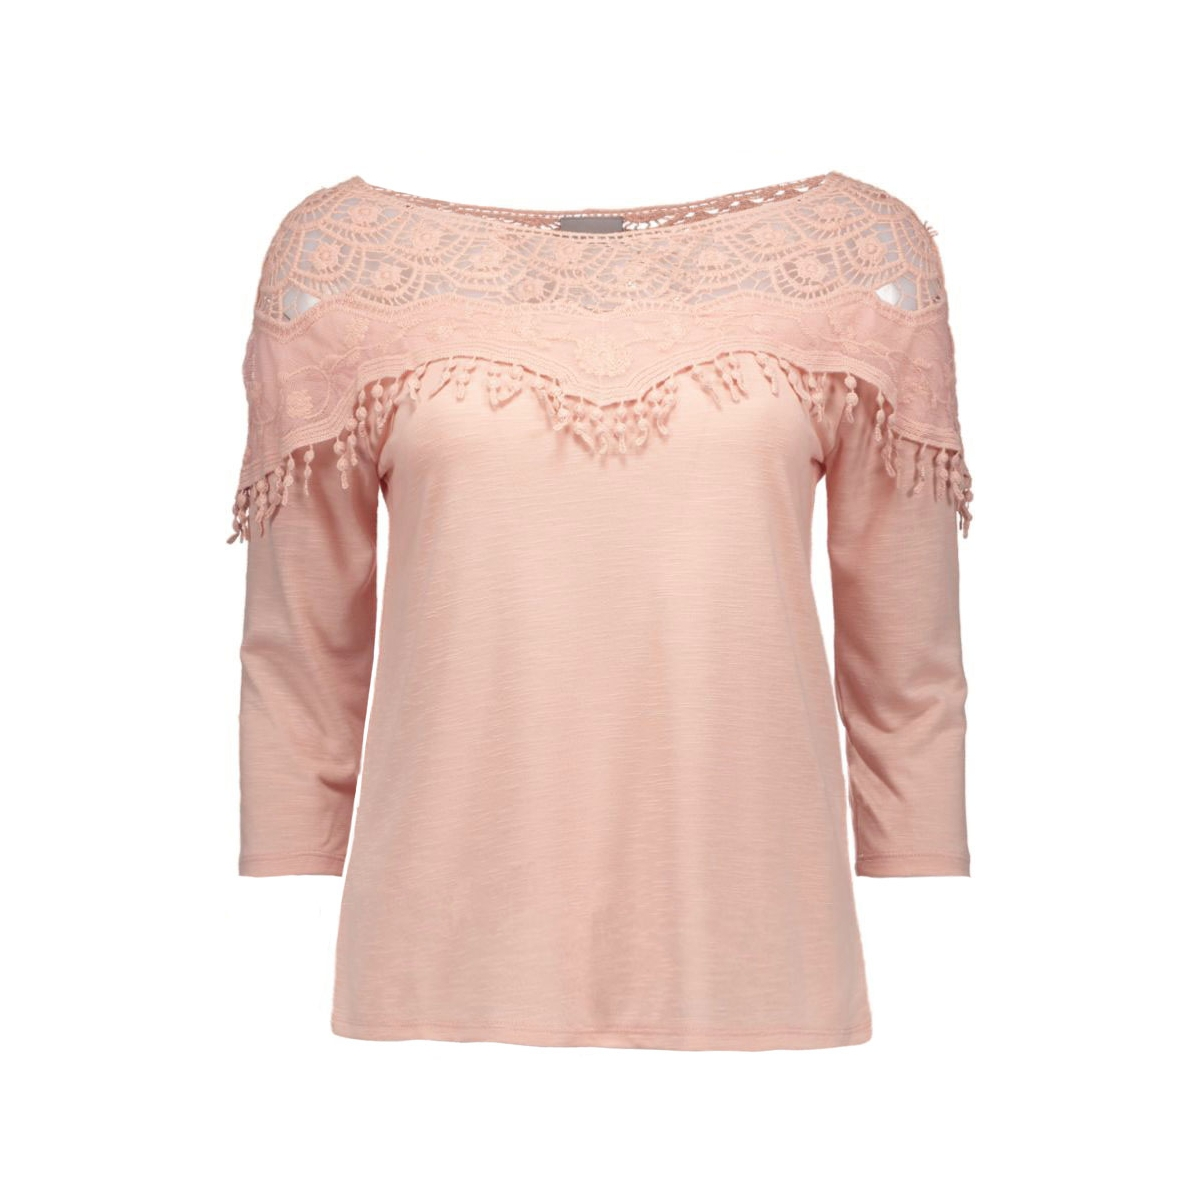 vmsusy 3/4 crochet top 10154911 vero moda t-shirt rose dust